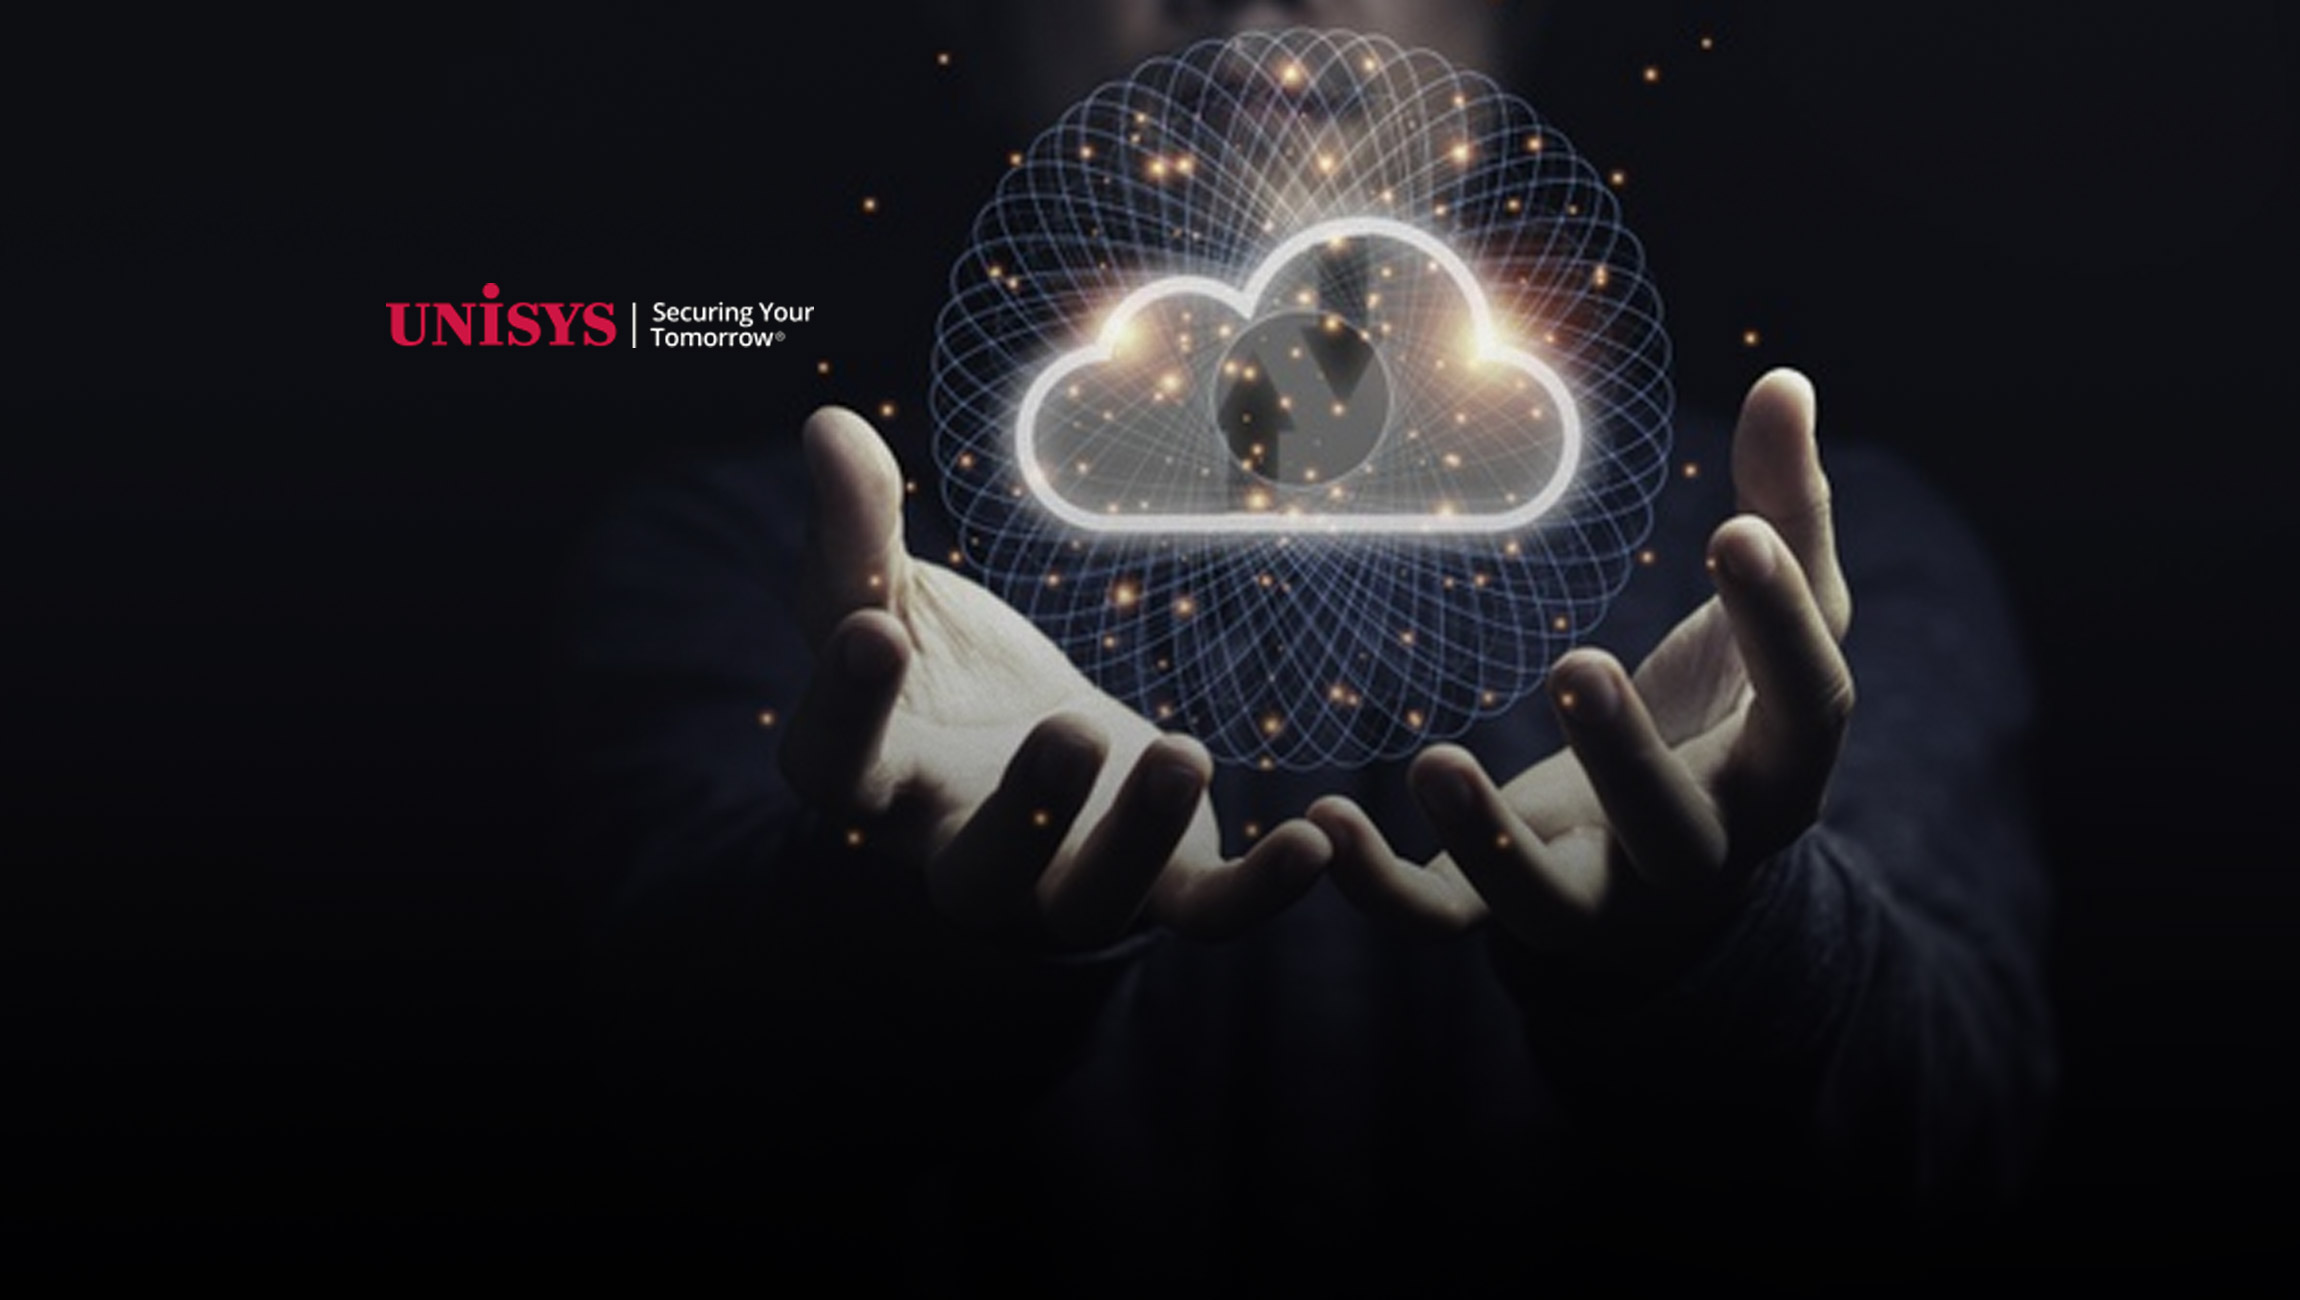 State of Wisconsin Selects Unisys to Provide Cloud-Based Contact Center Solution